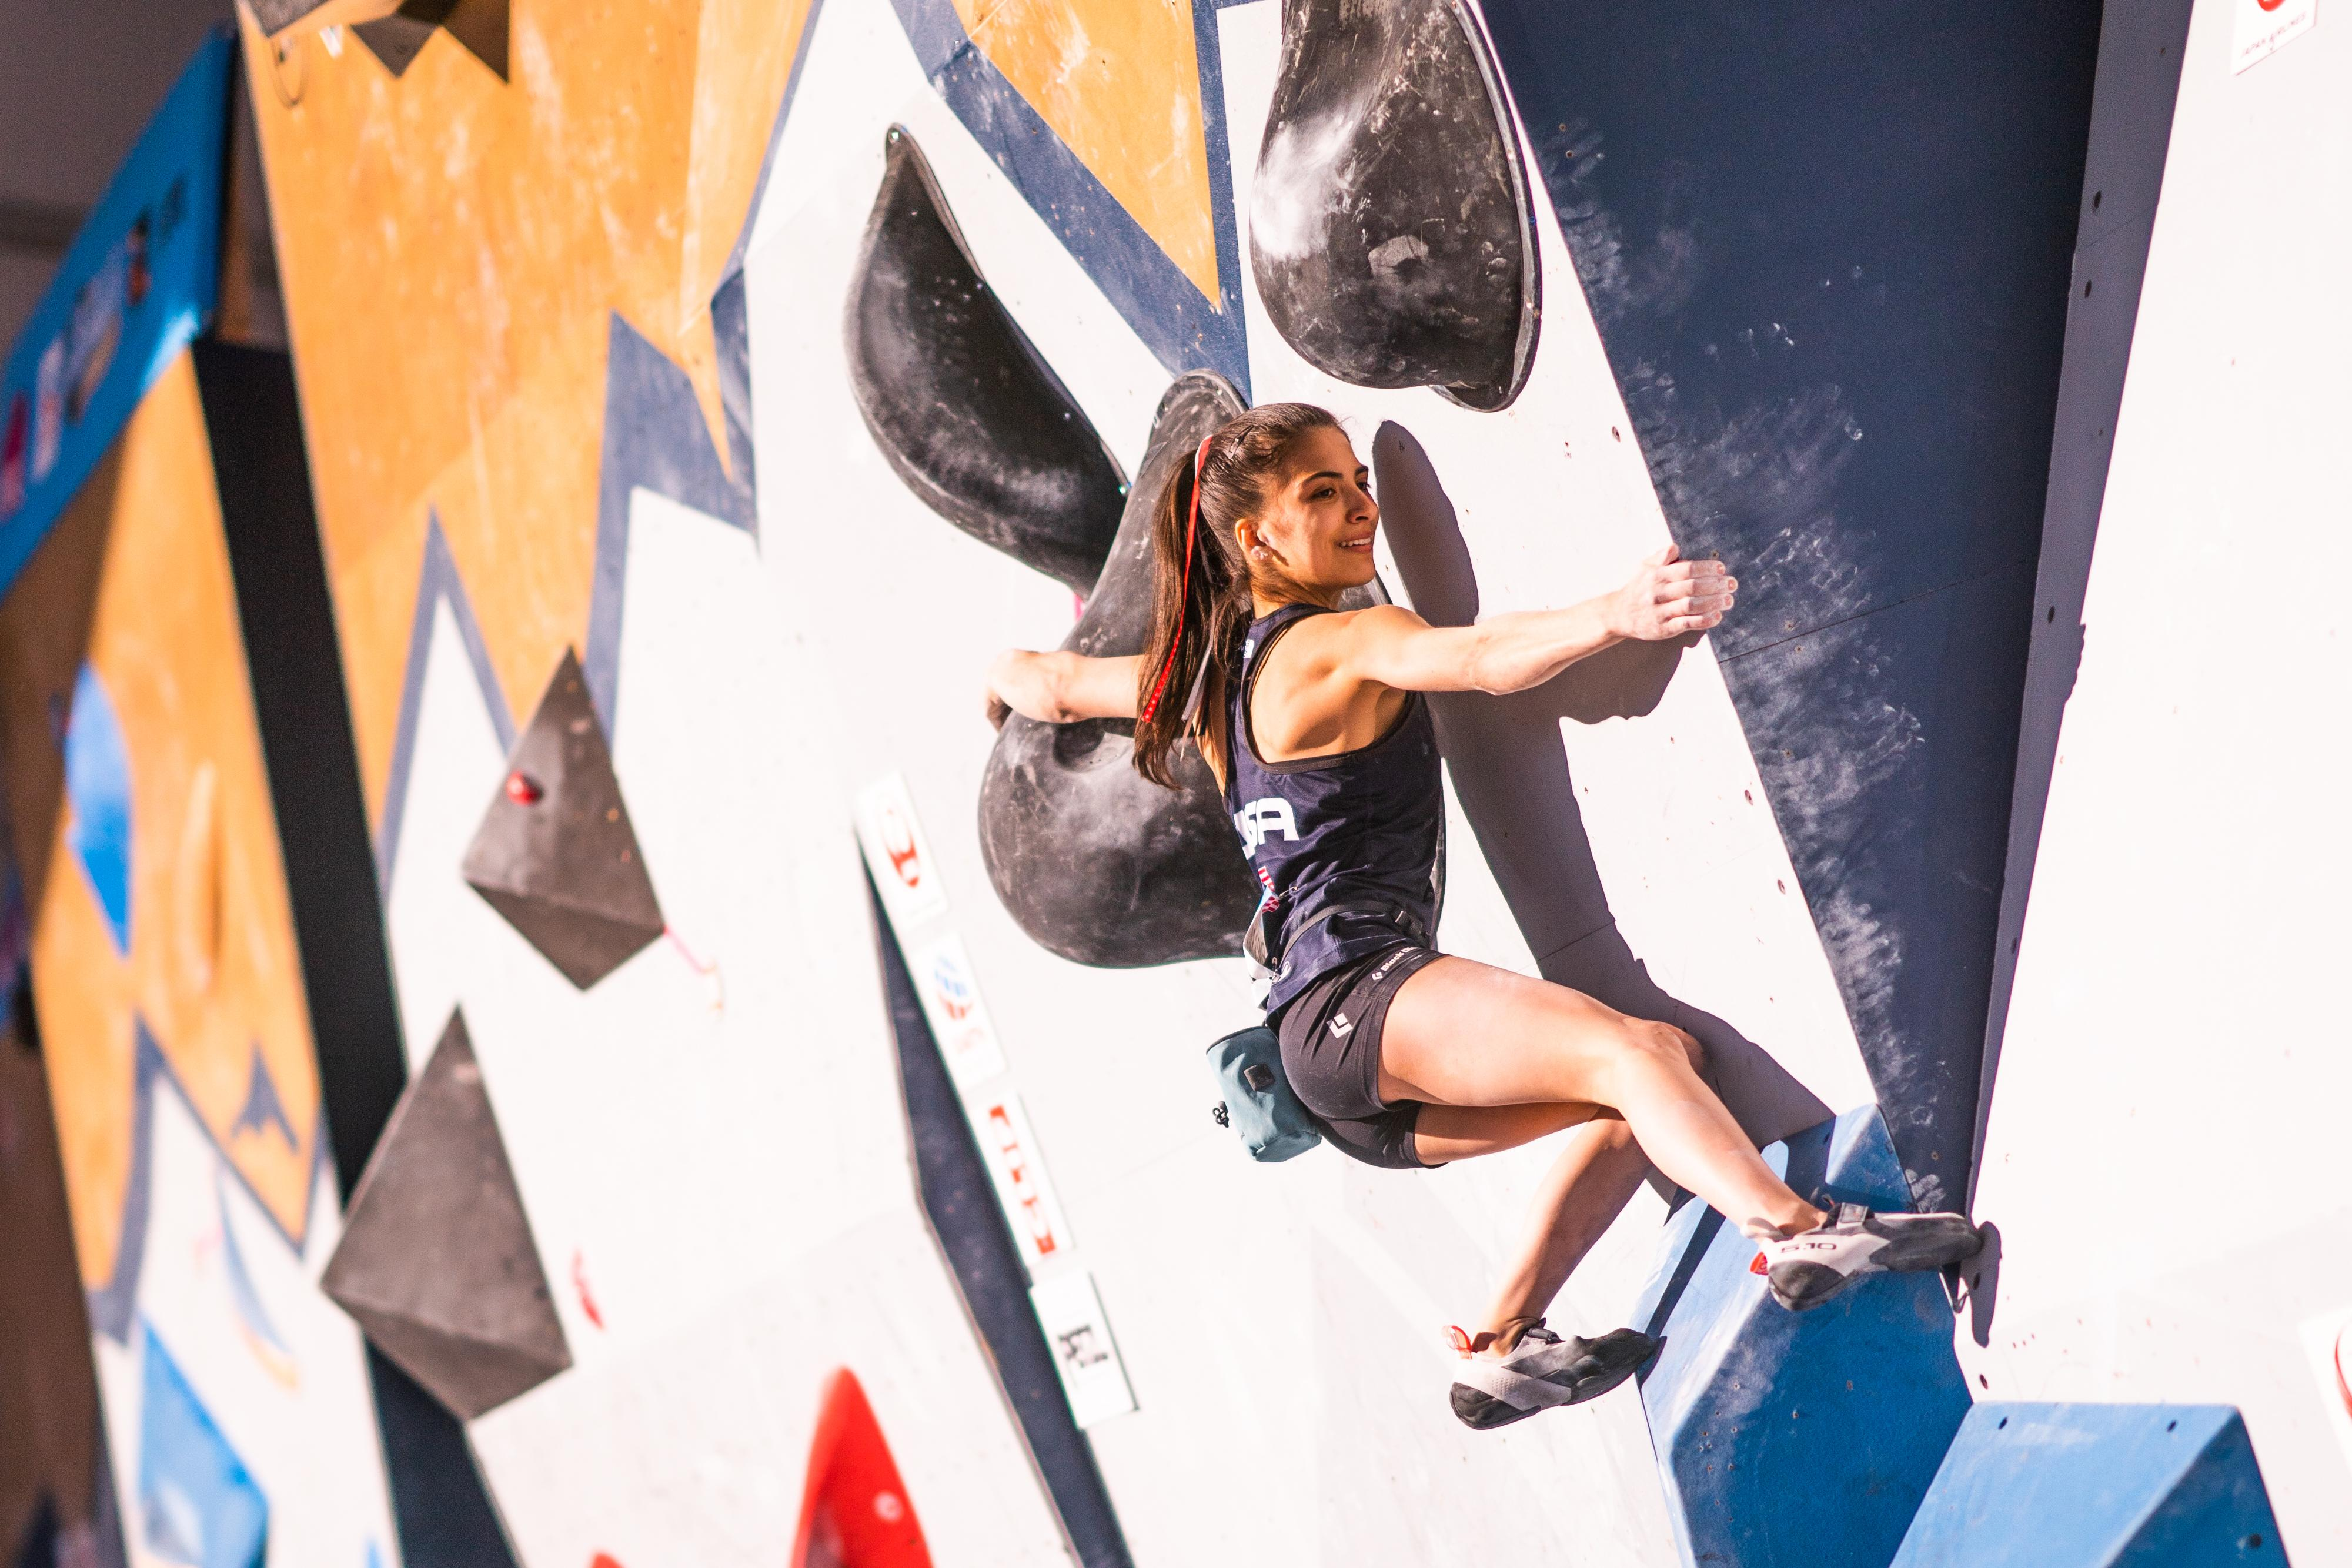 210530 IFSC News Team USA crushes both Boulder finals in Salt Lake City with Bailey and Grossman